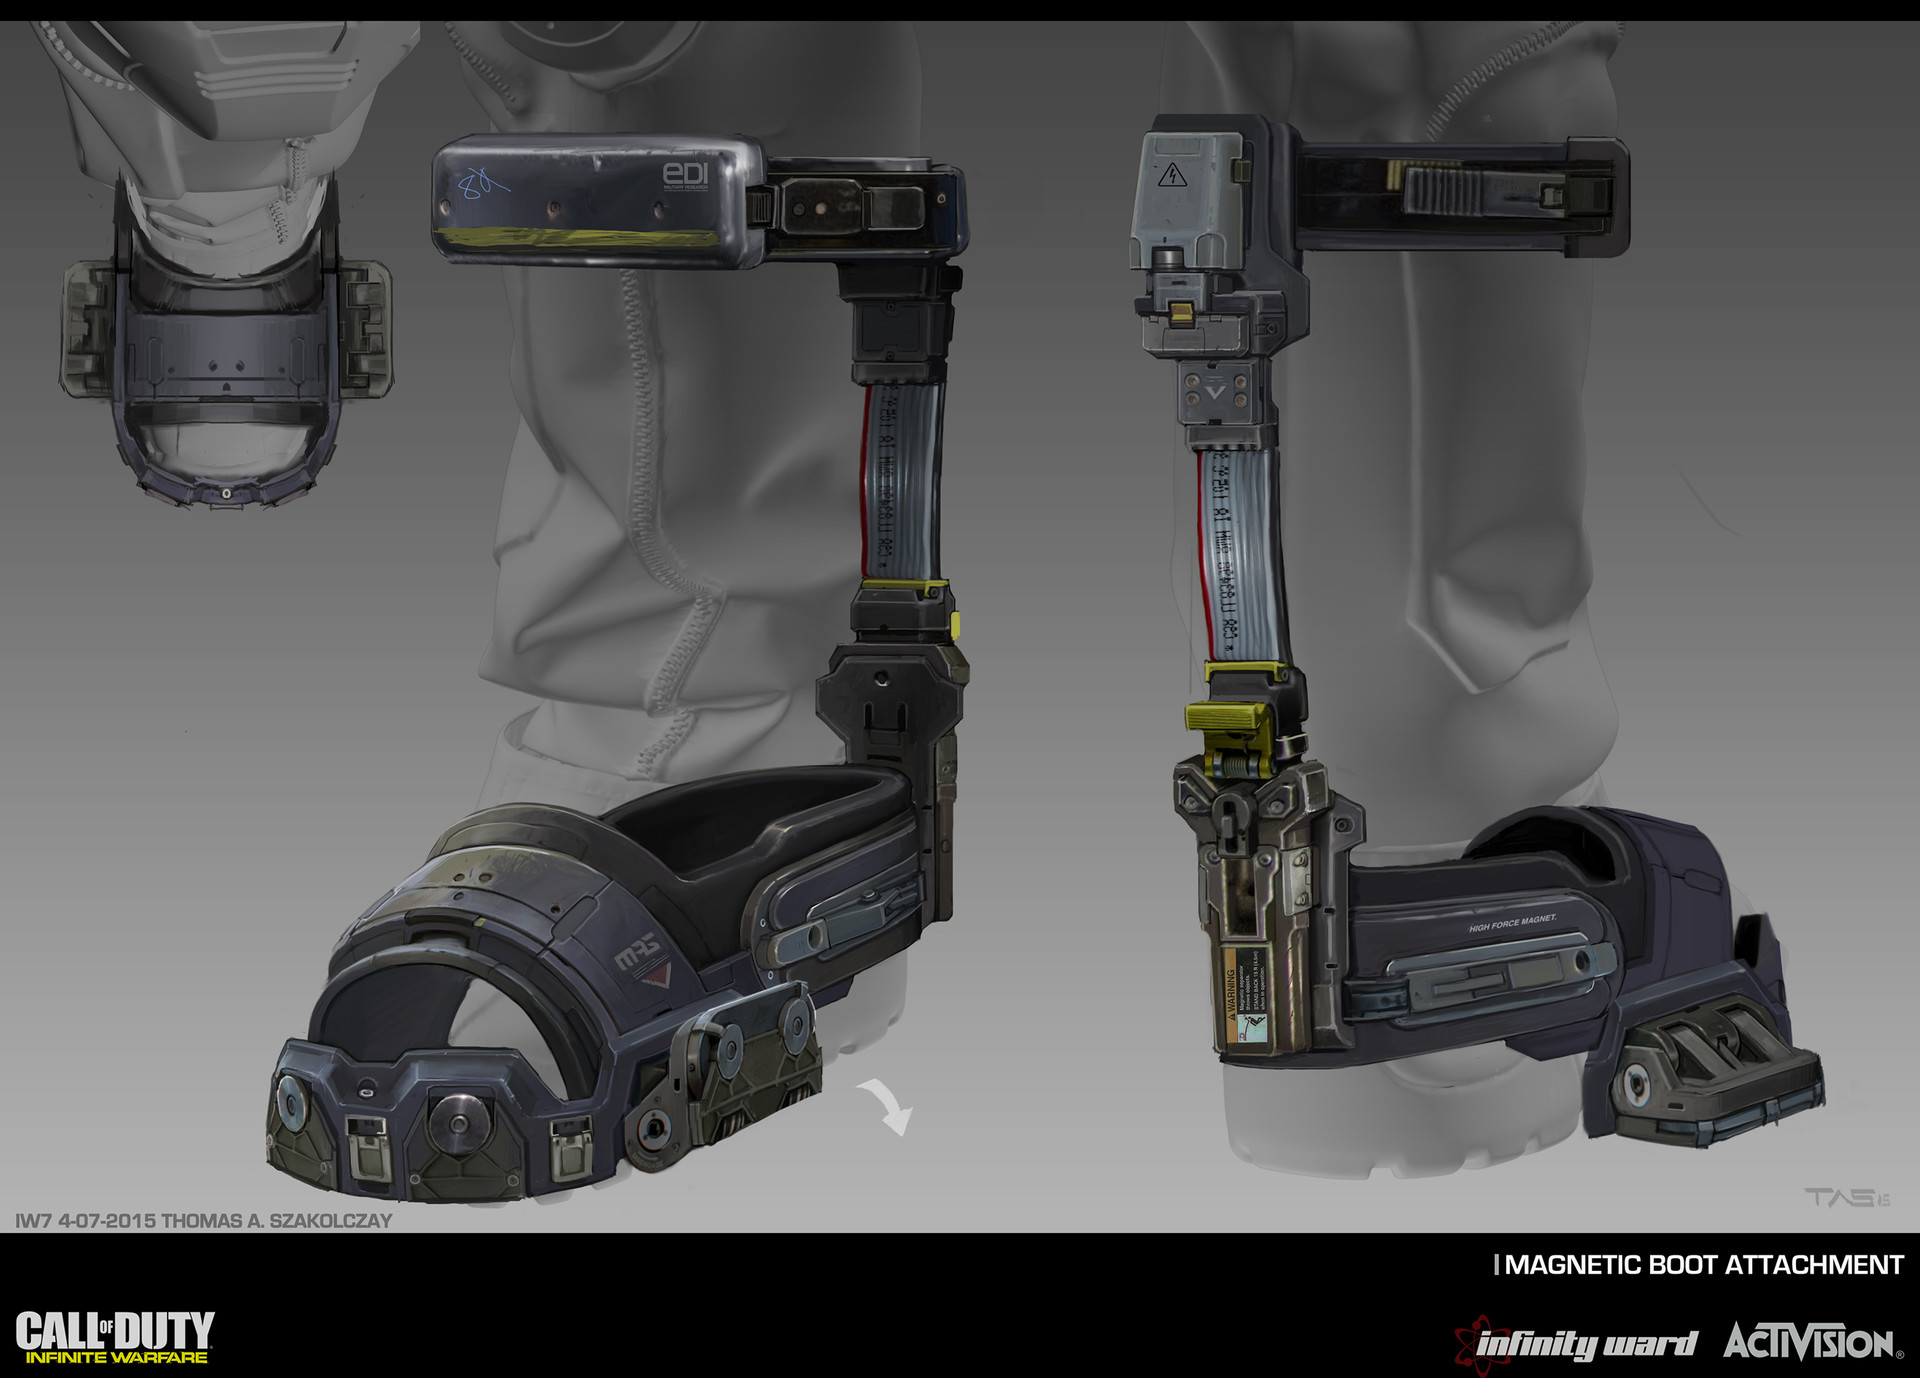 Magnetic Boots:  This is an older design that evolved into a much more simplified version. The original brief called for boot attachments that had an obvious analogue mechanism to indicate magnetism was activated for game design reasons.